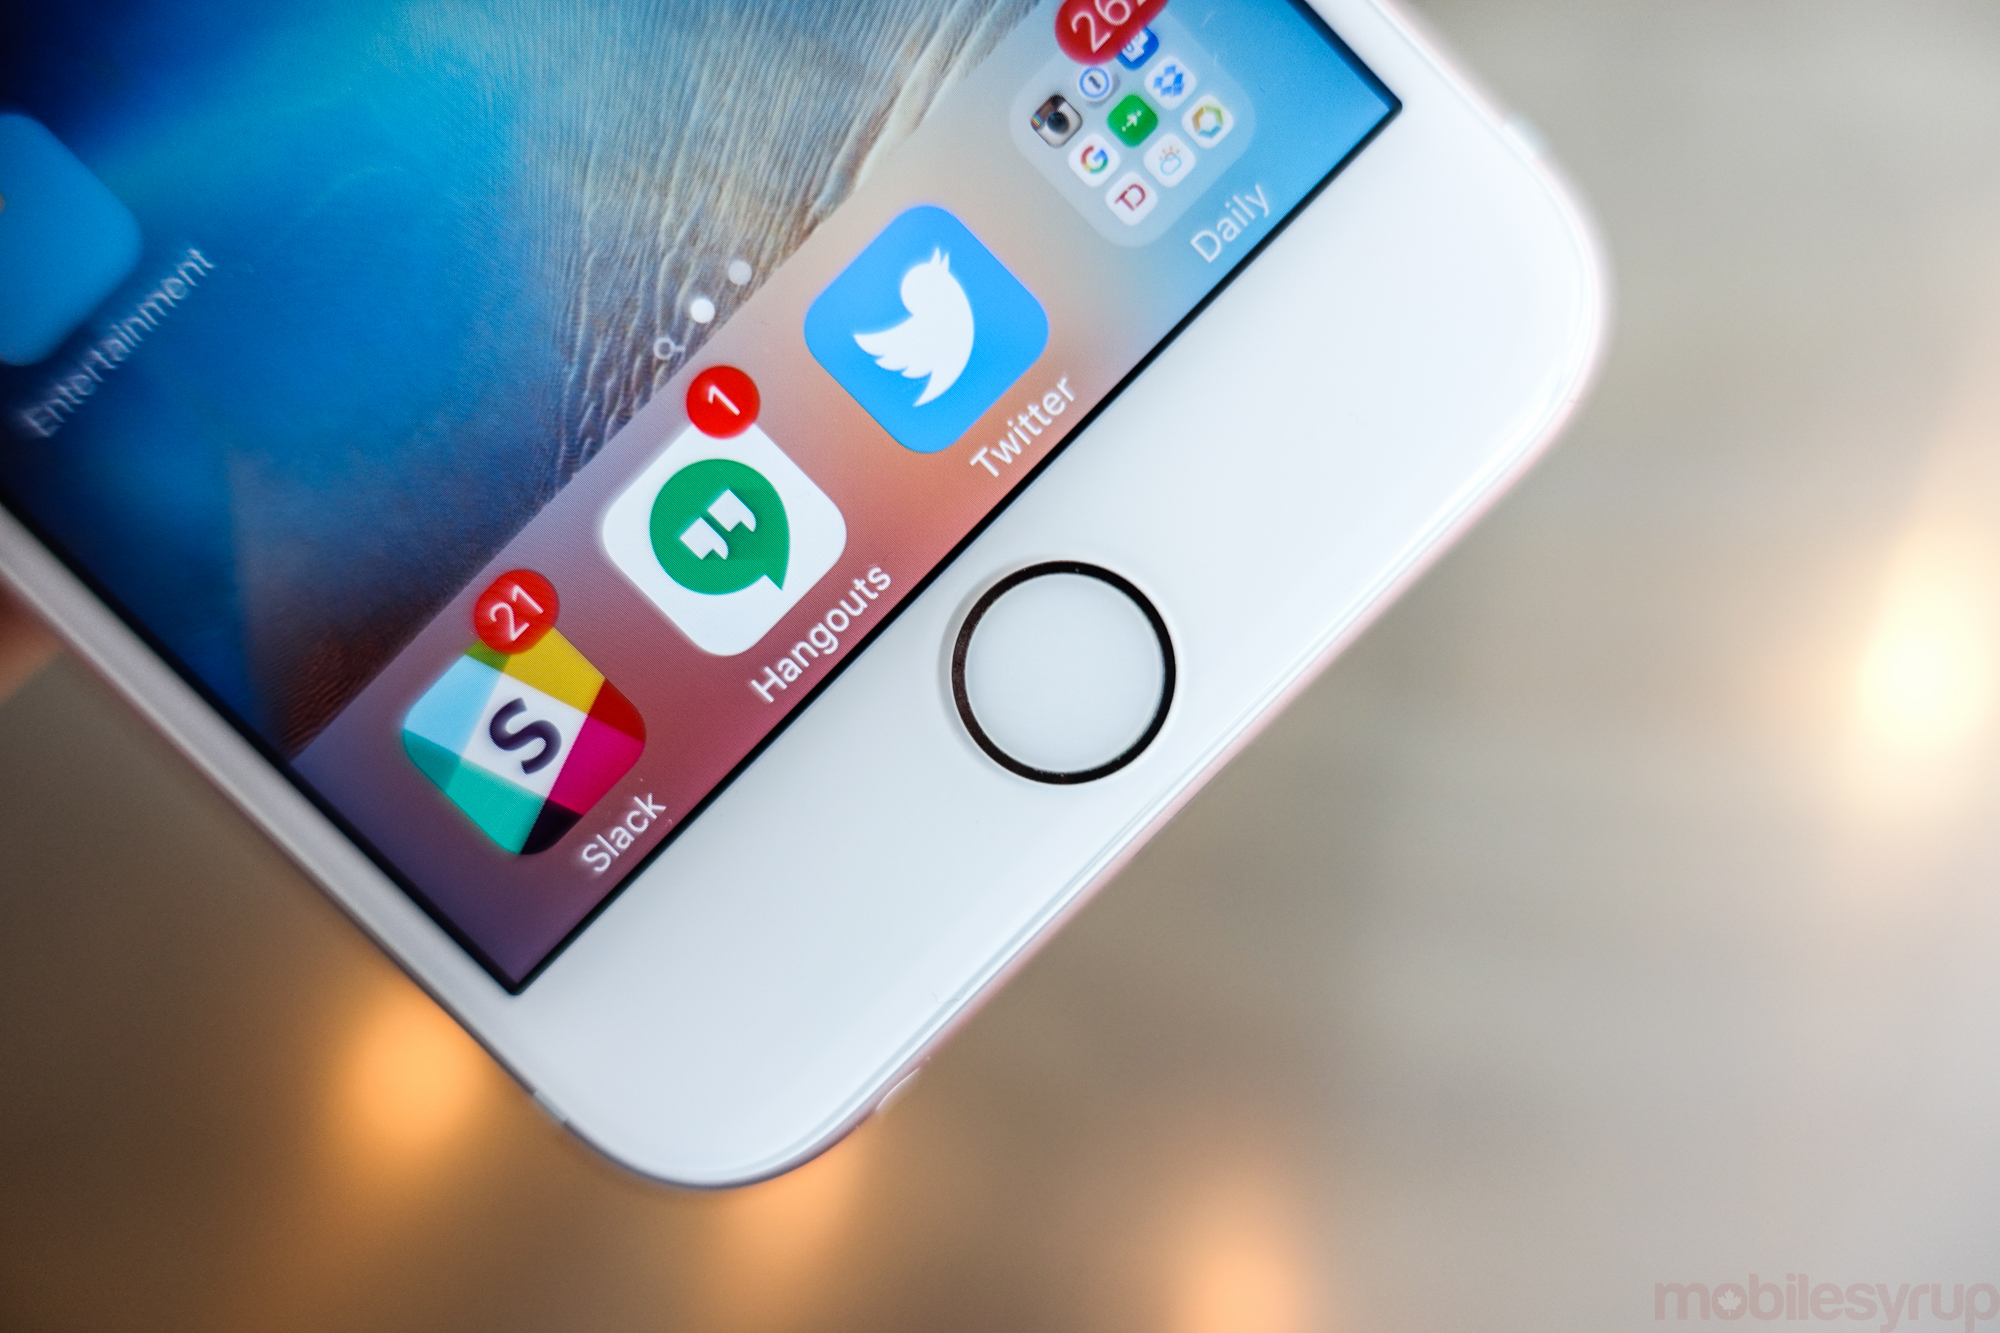 iphone6sreview-01258